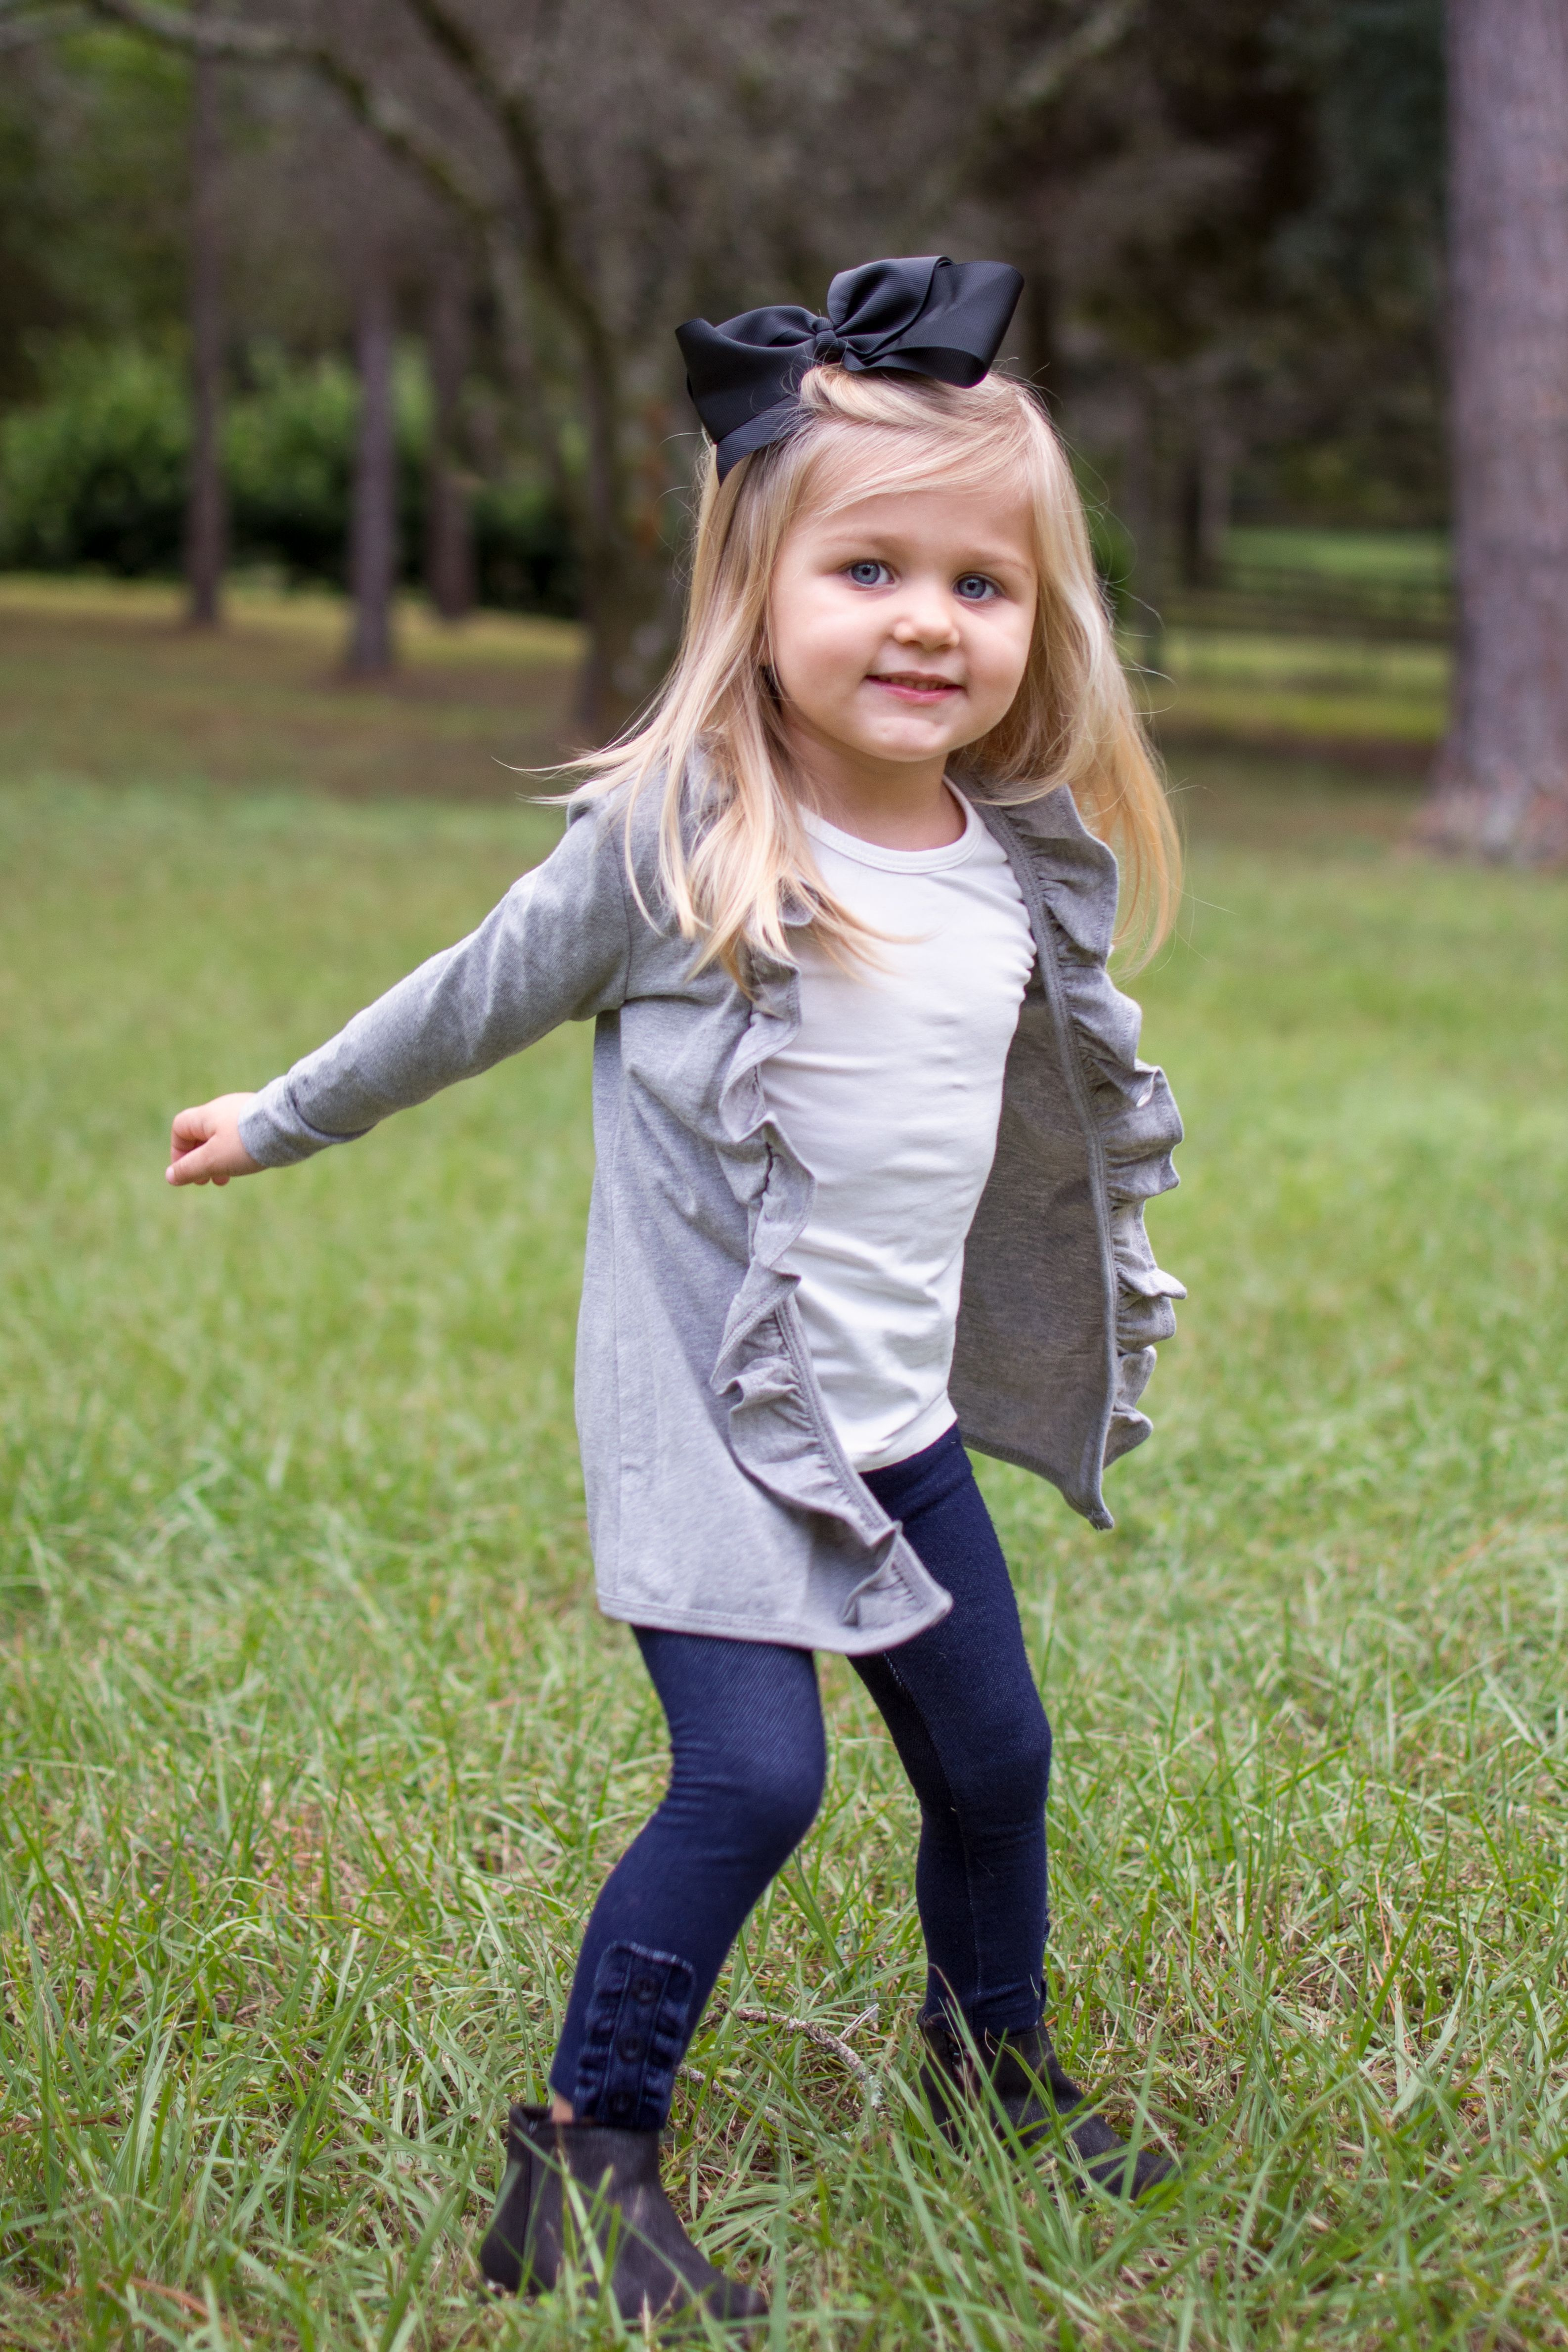 c551114957efa Children's boutique clothing and accessories Knit ruffle items, icings,  cotton clothing, toddlers fashion